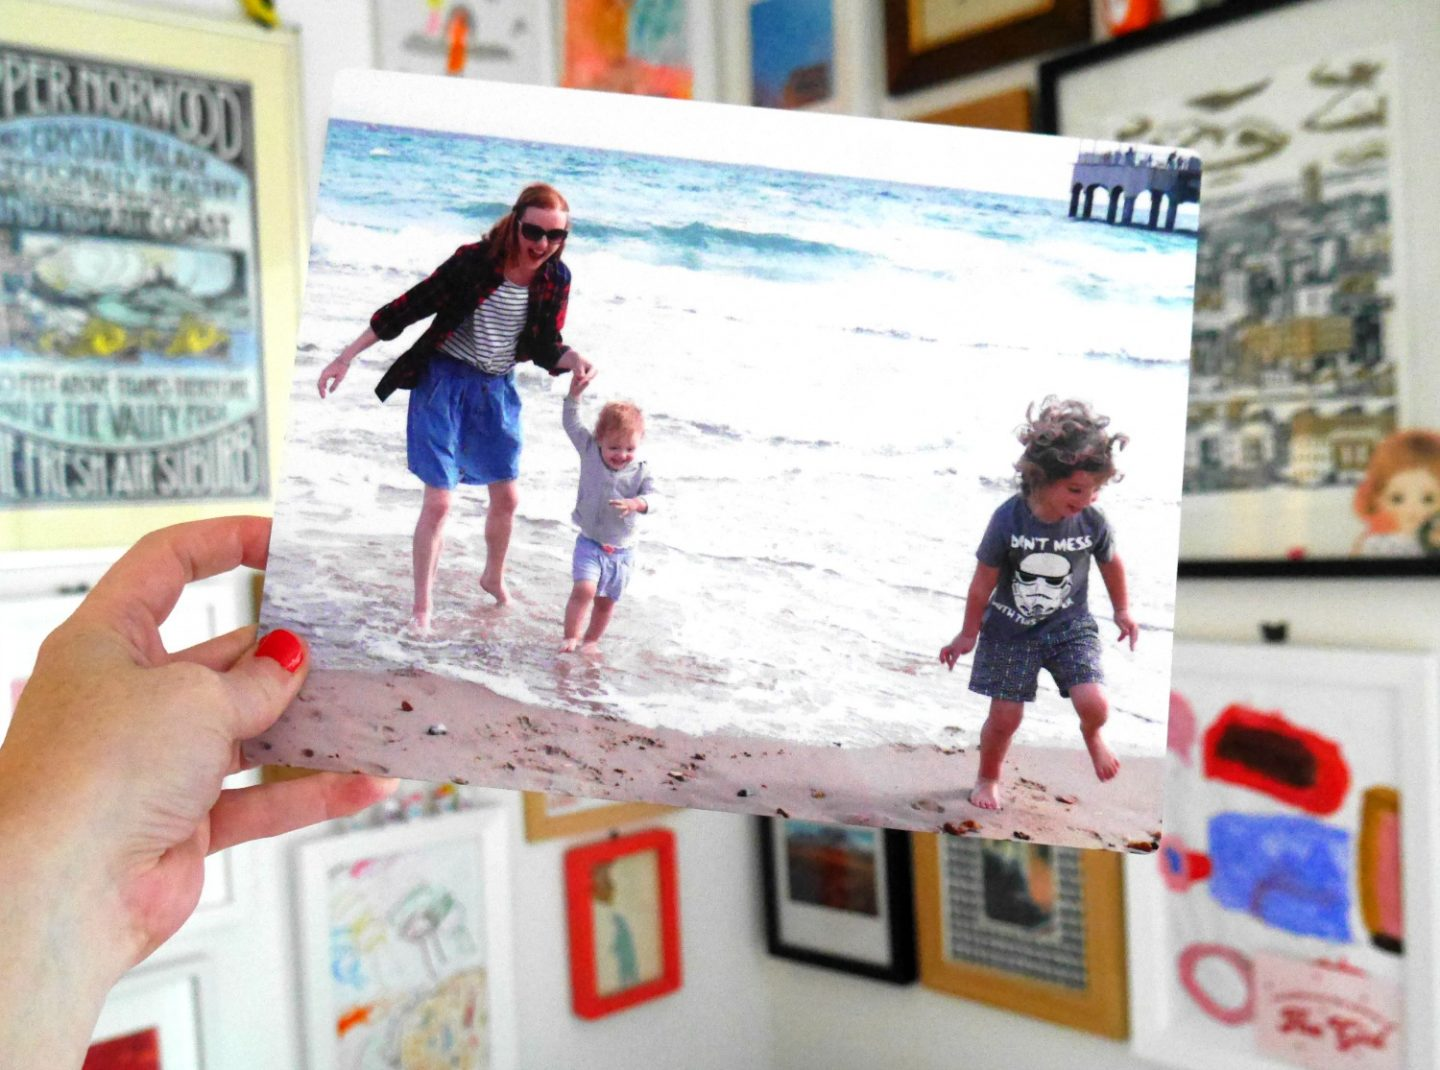 Snapfish review - printing photos of bournemouth beach